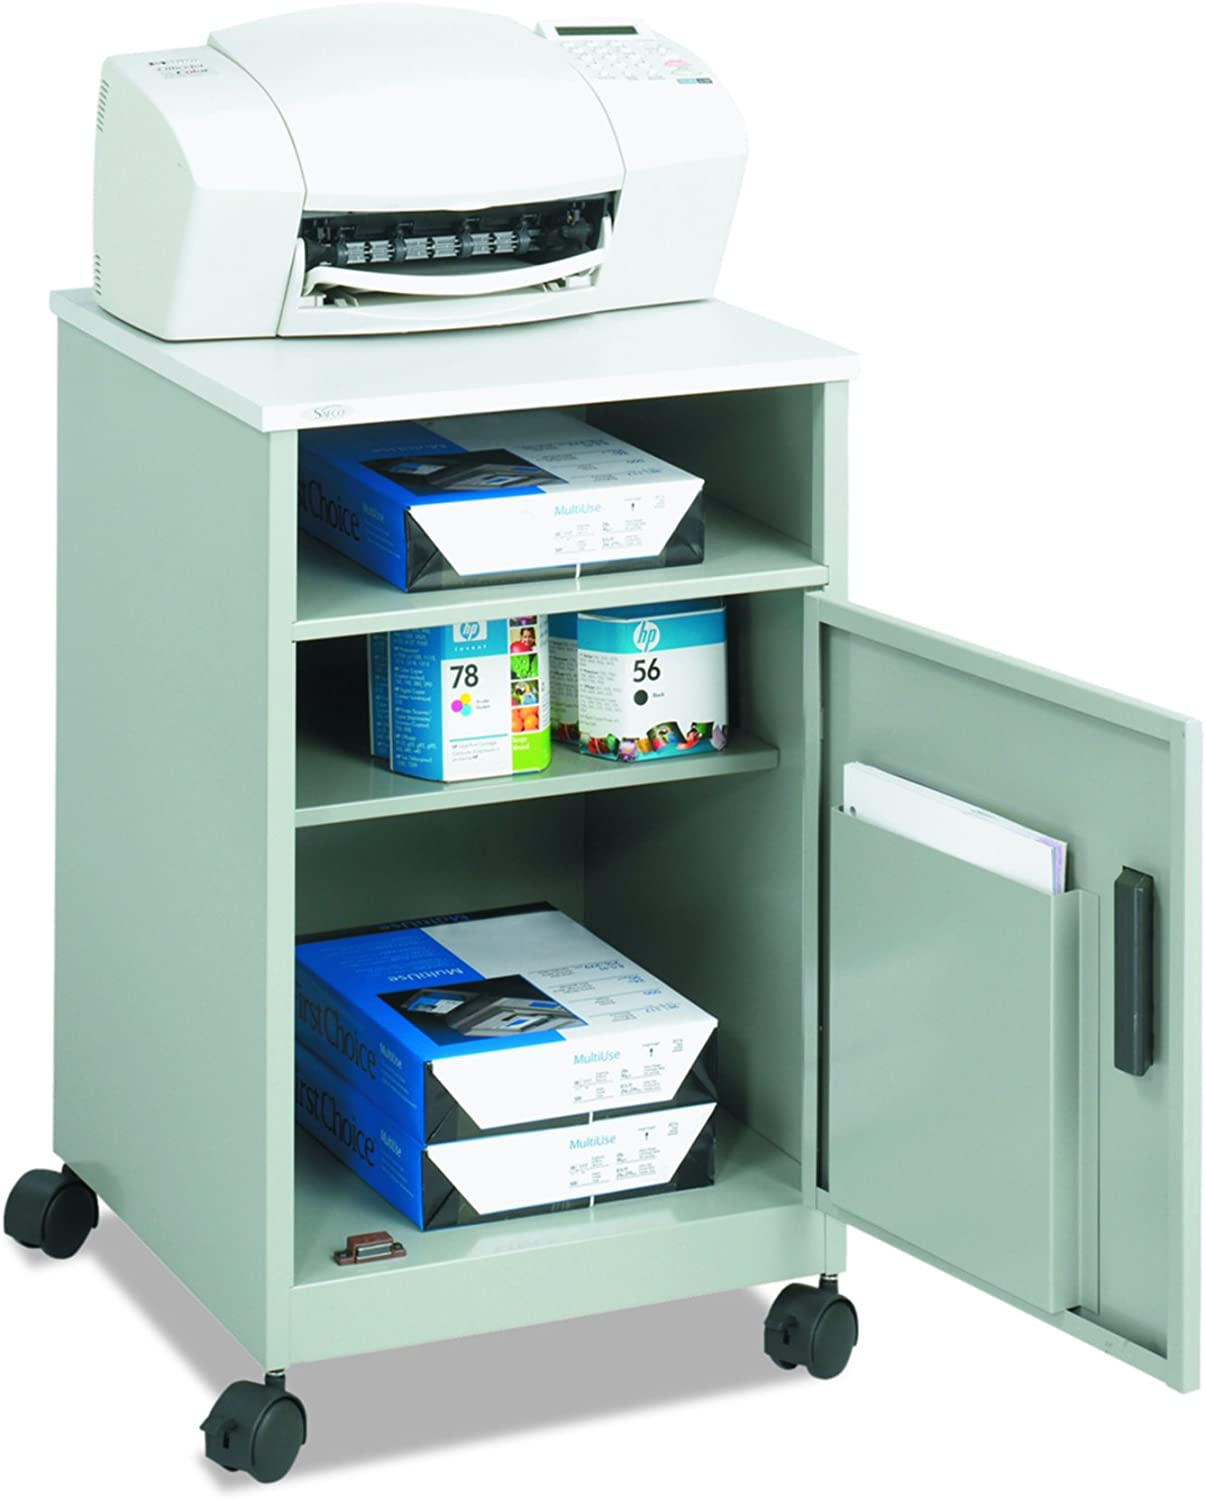 Safco Products 1871GR Compact Machine Stand with Single Door Storage, Gray